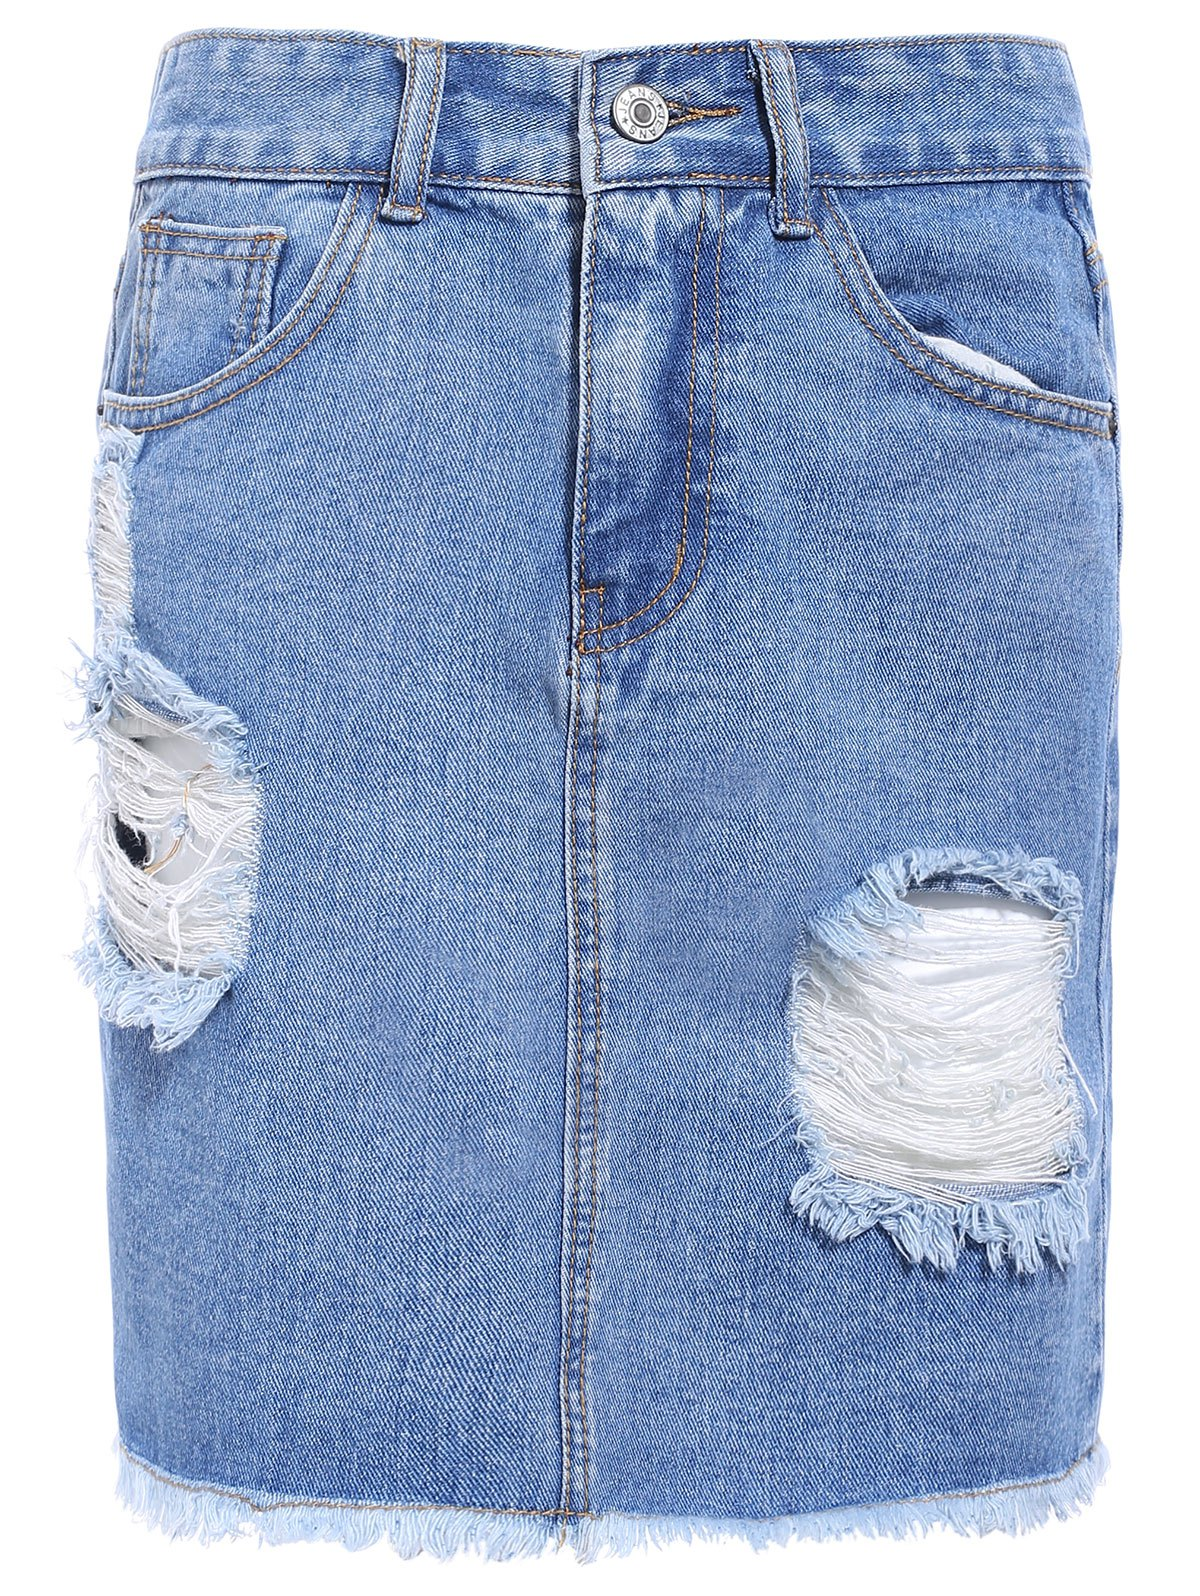 Fashionable Broken Hole Fringed Pocket Design Women's Denim Skirt - LIGHT BLUE L